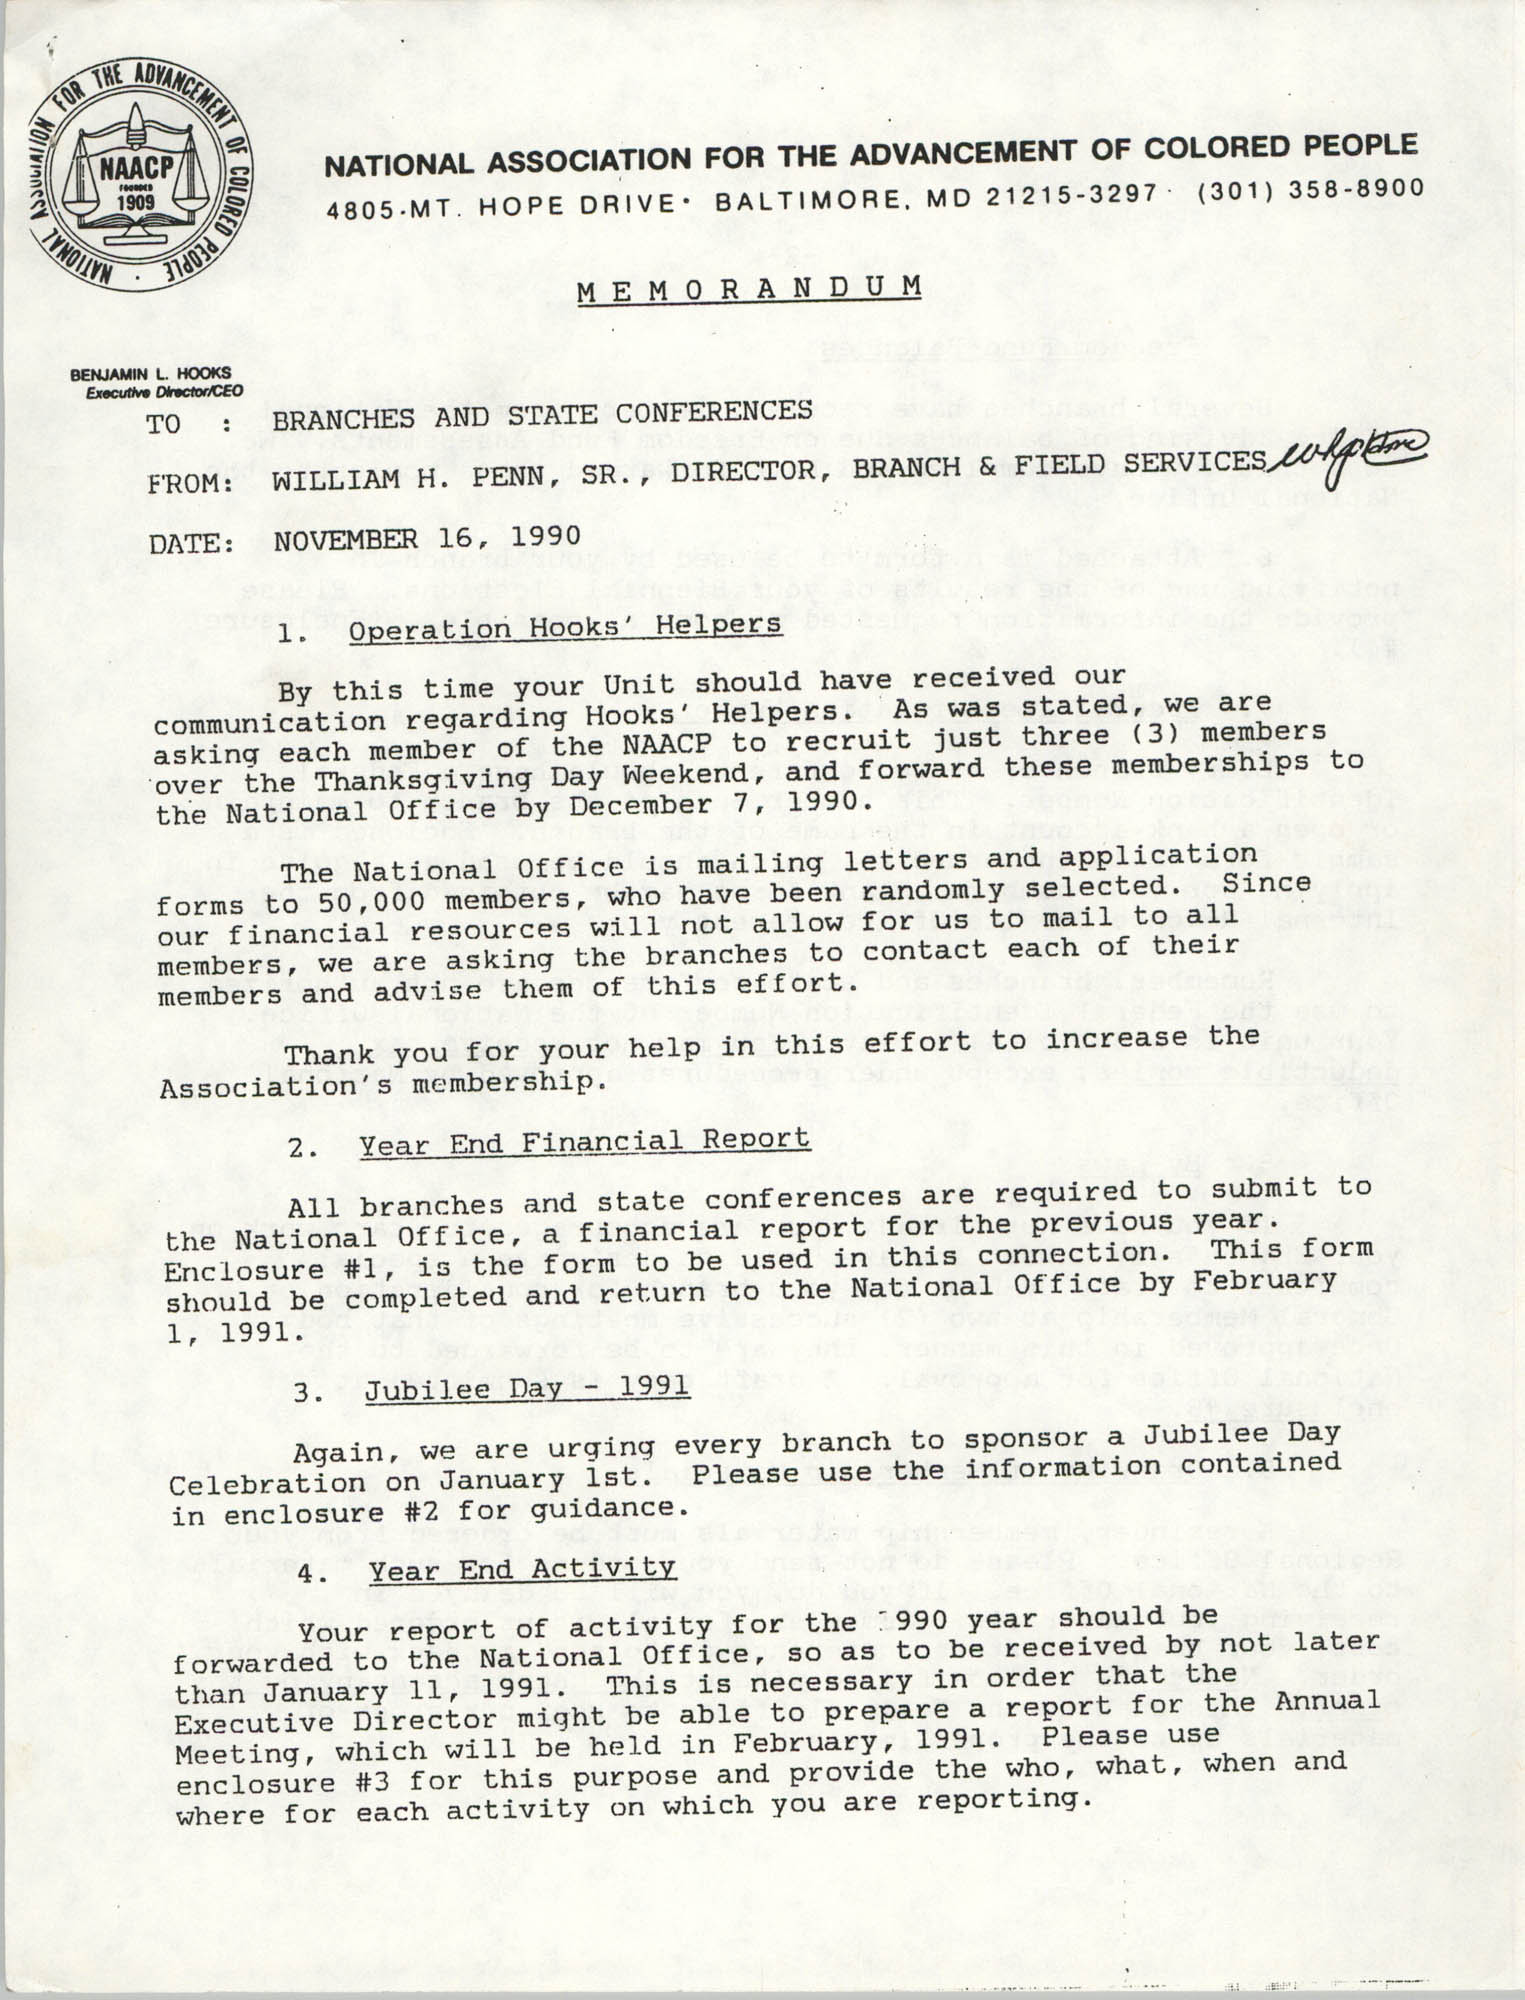 NAACP Memorandum, November 16, 1990